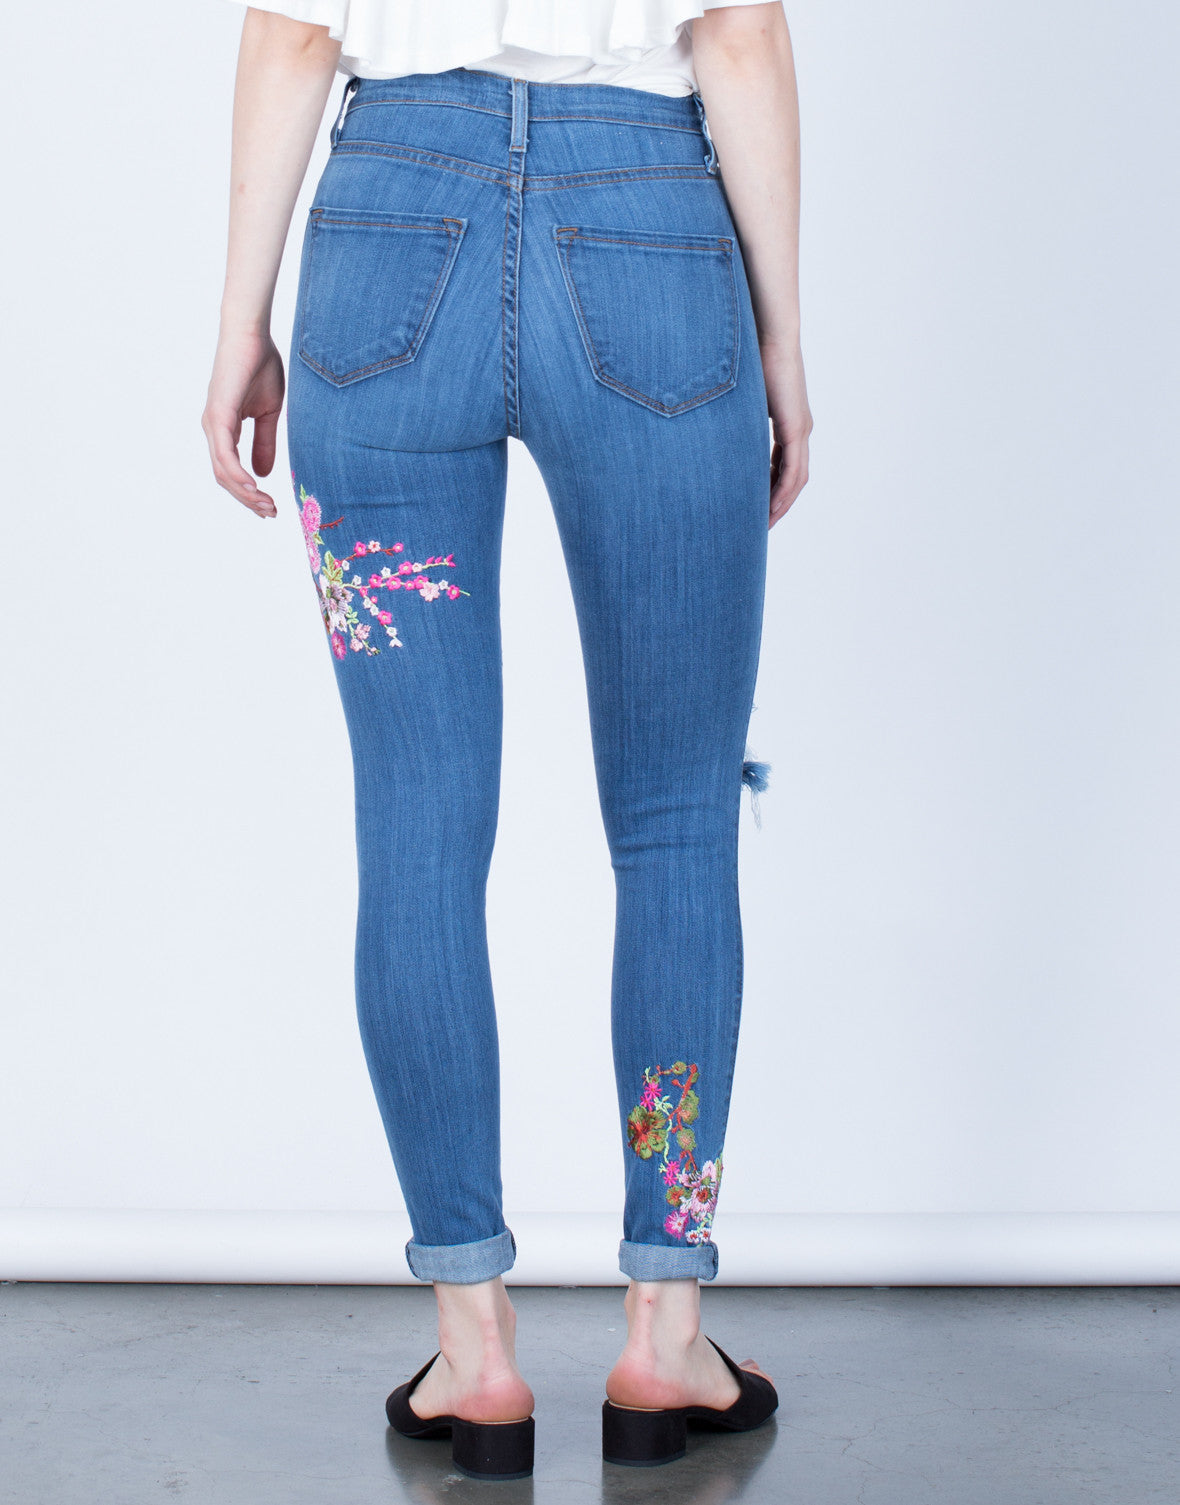 Back View of Floral Embroidered Jeans